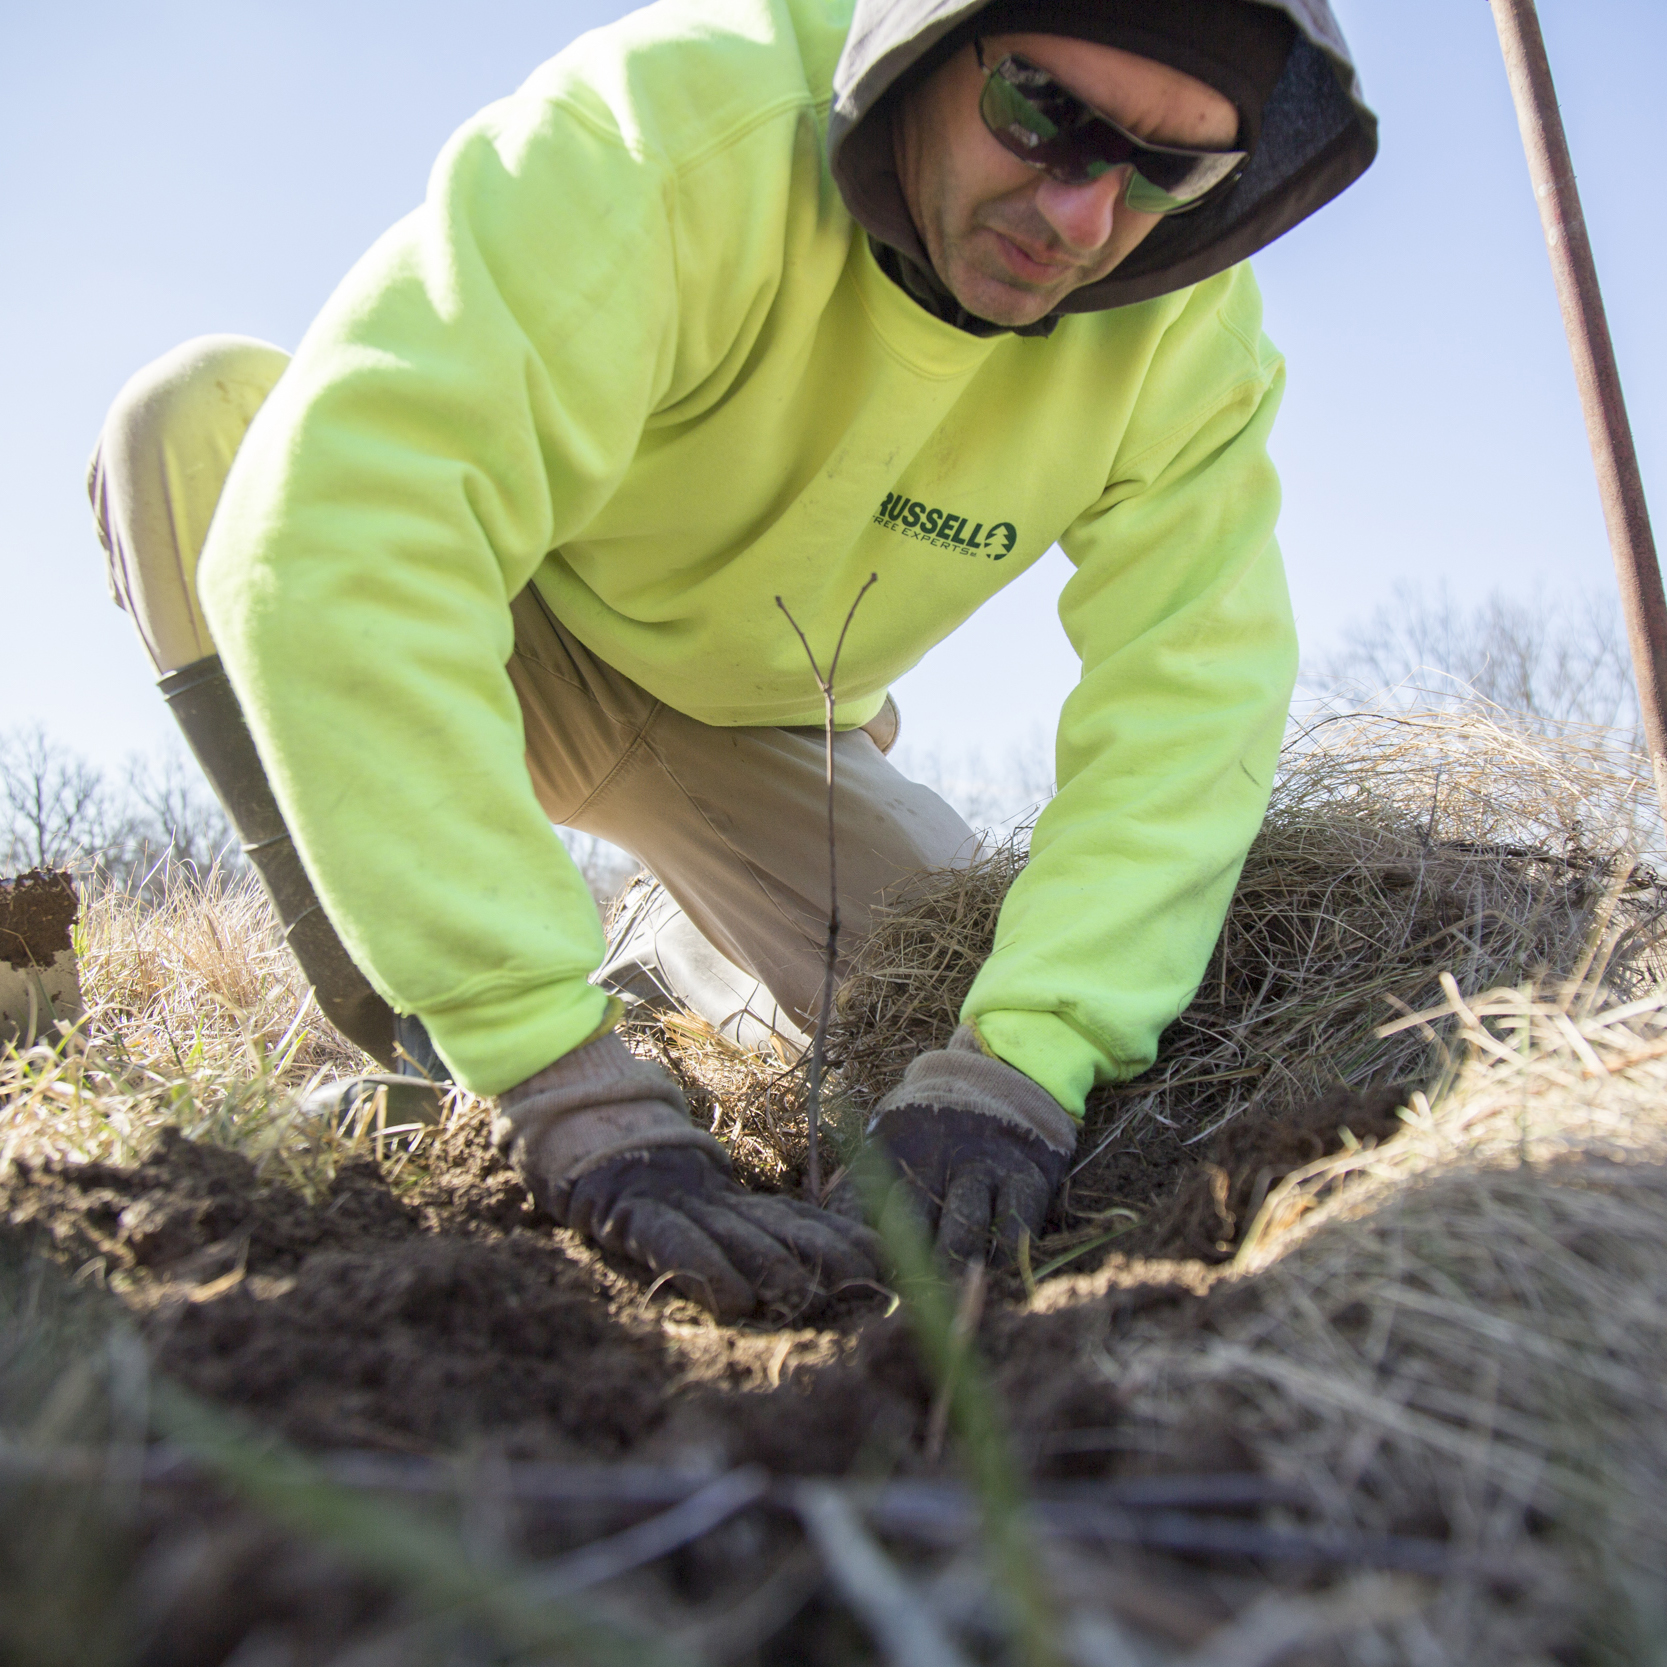 - TREE FOR A TREE® program is launched